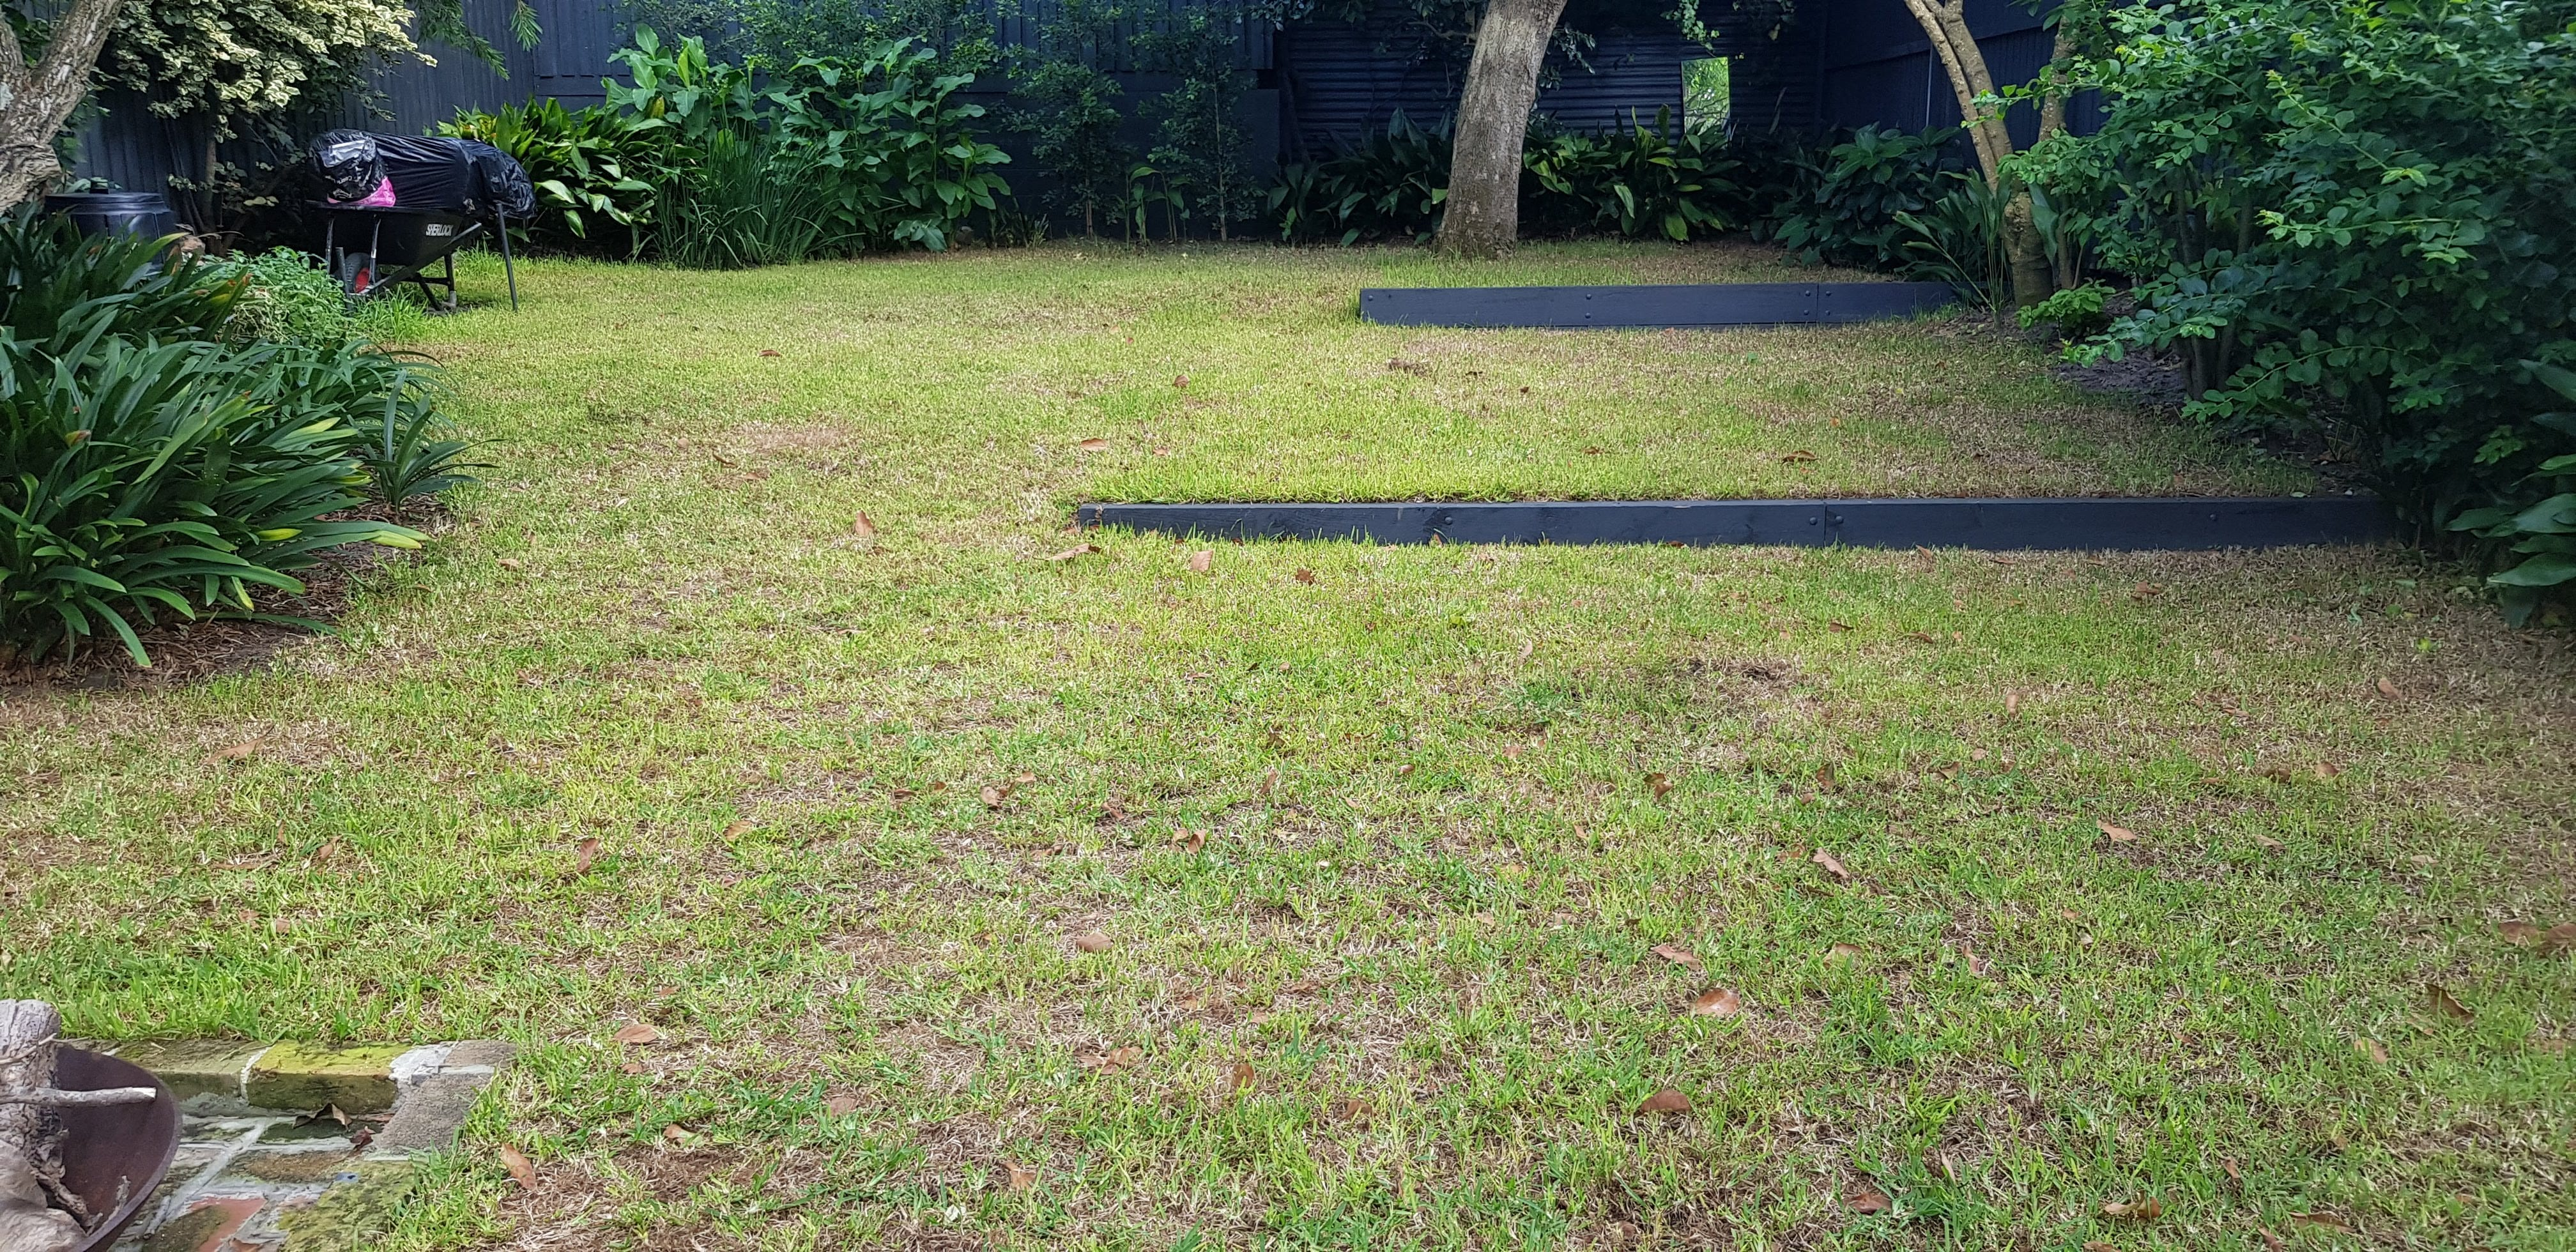 What Causes Bare Patches in Lawn | How to Repair Bare Patches in Lawn